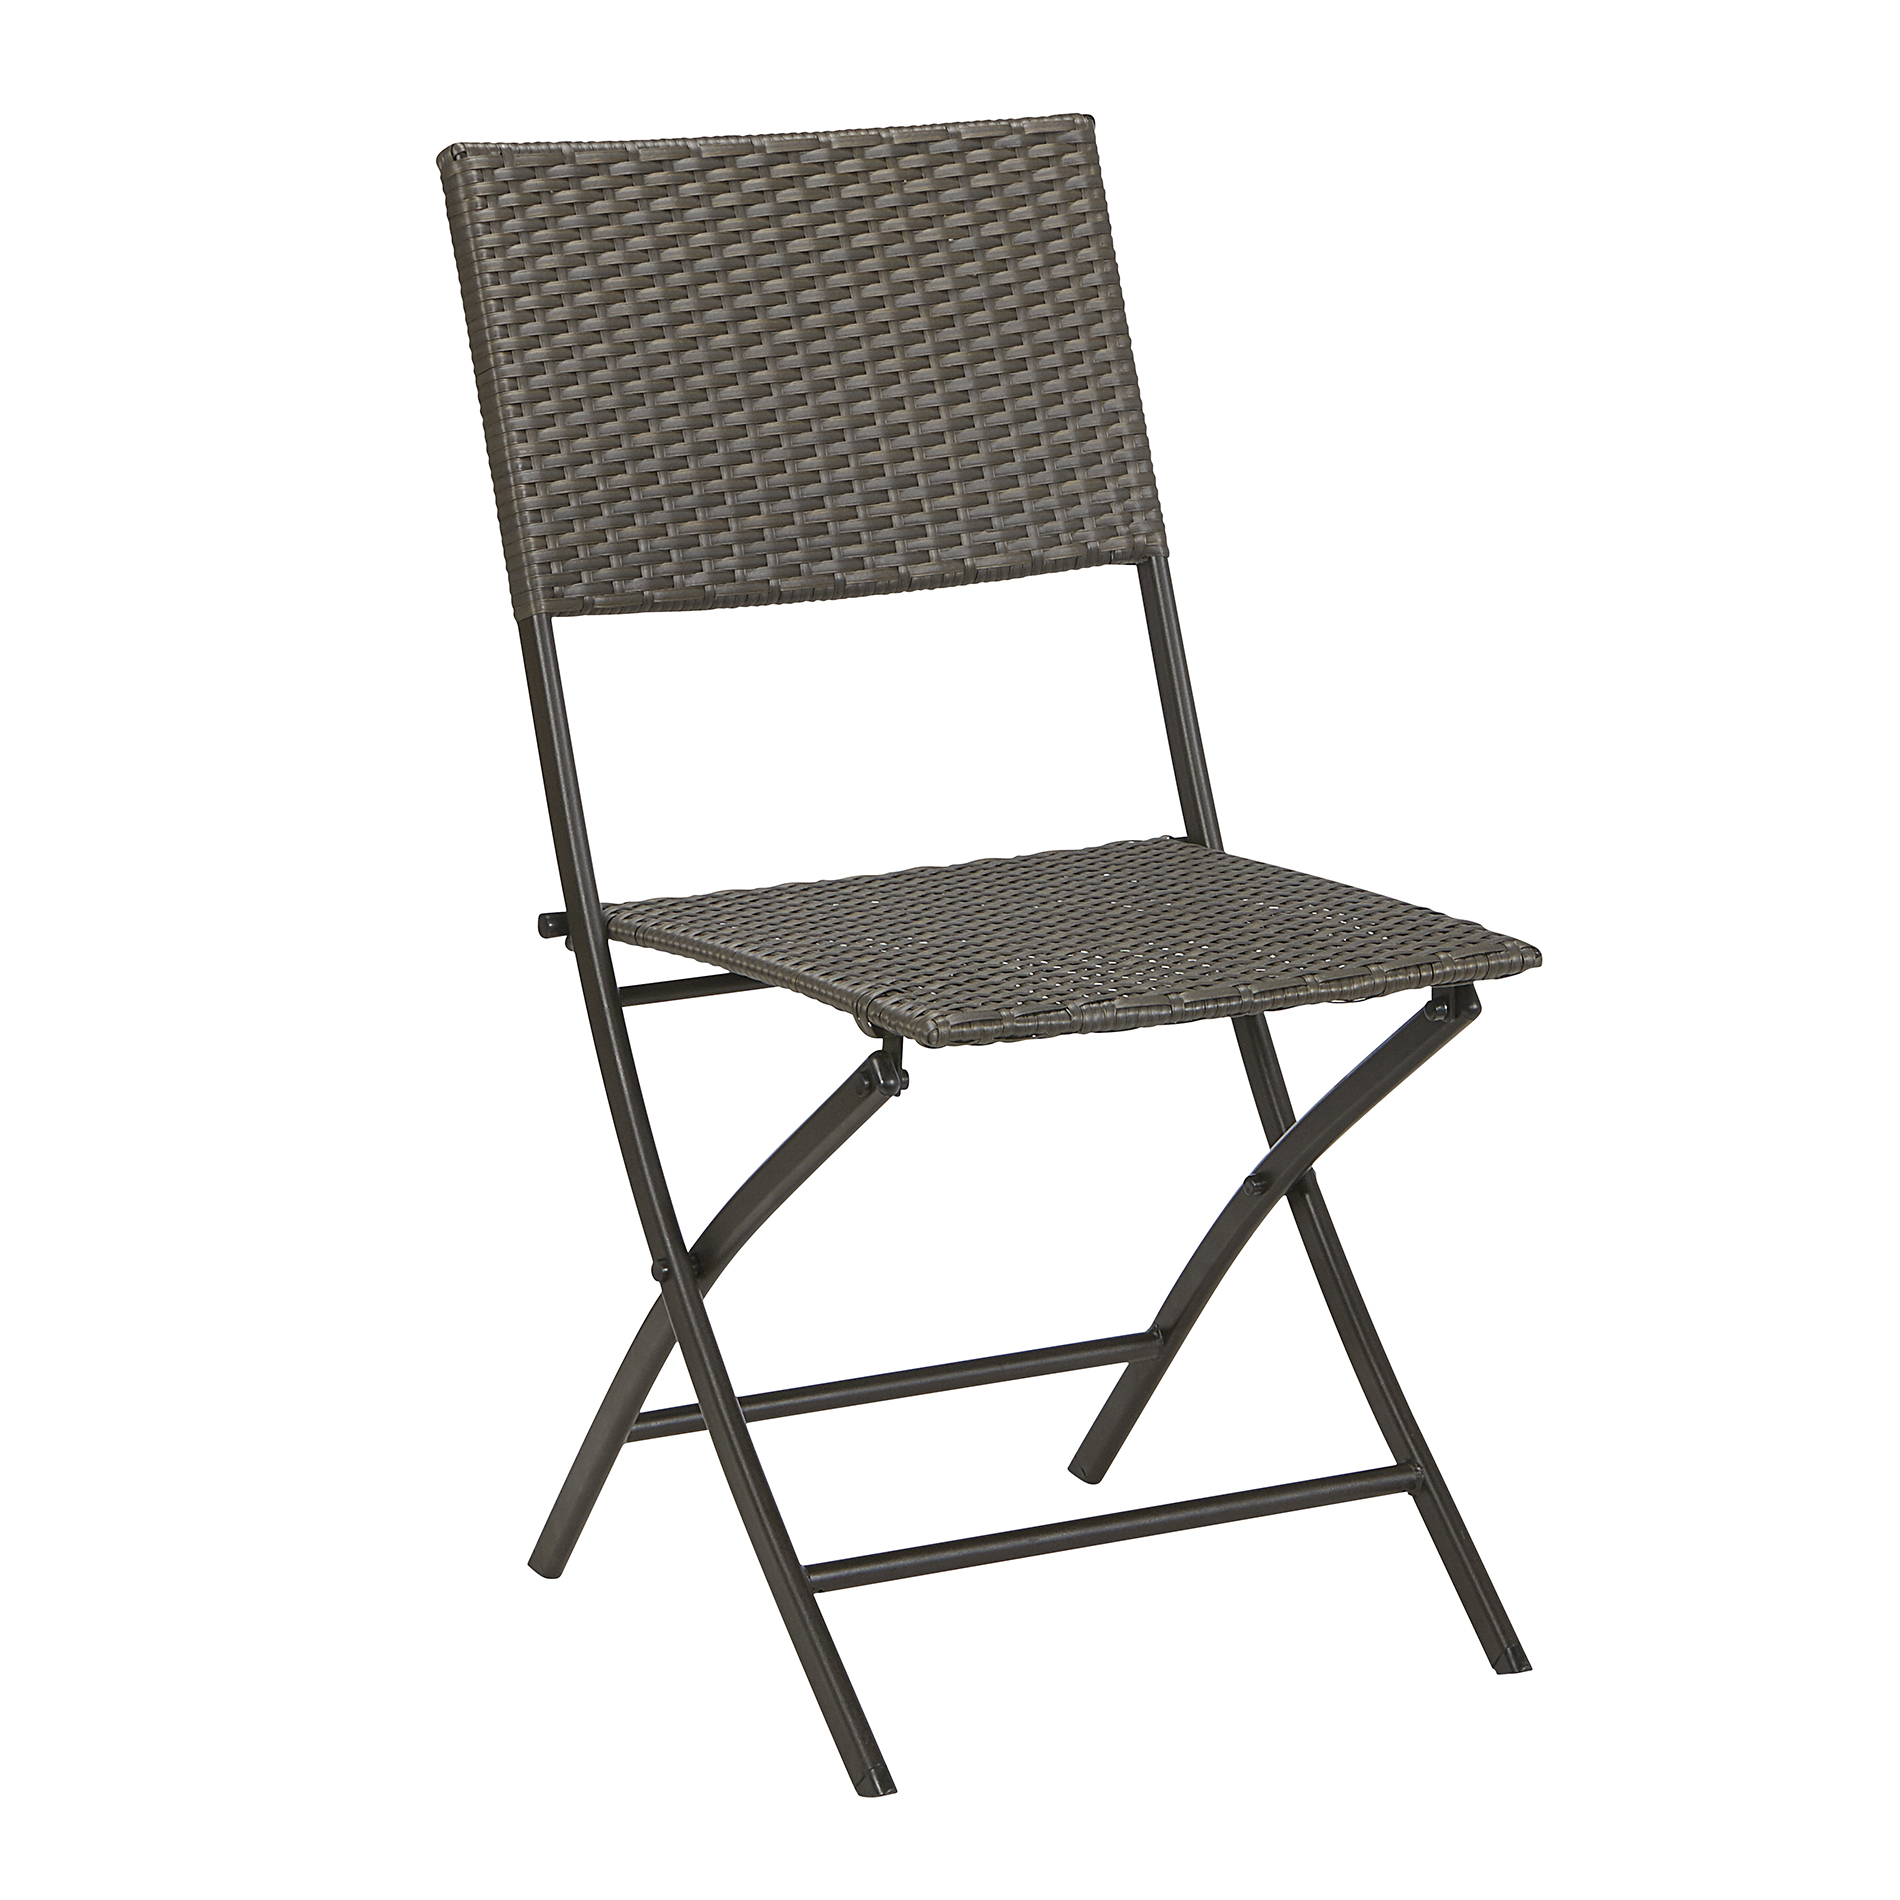 Sears Patio Chairs Garden Oasis Resin Wicker Folding Chair Armless Limited